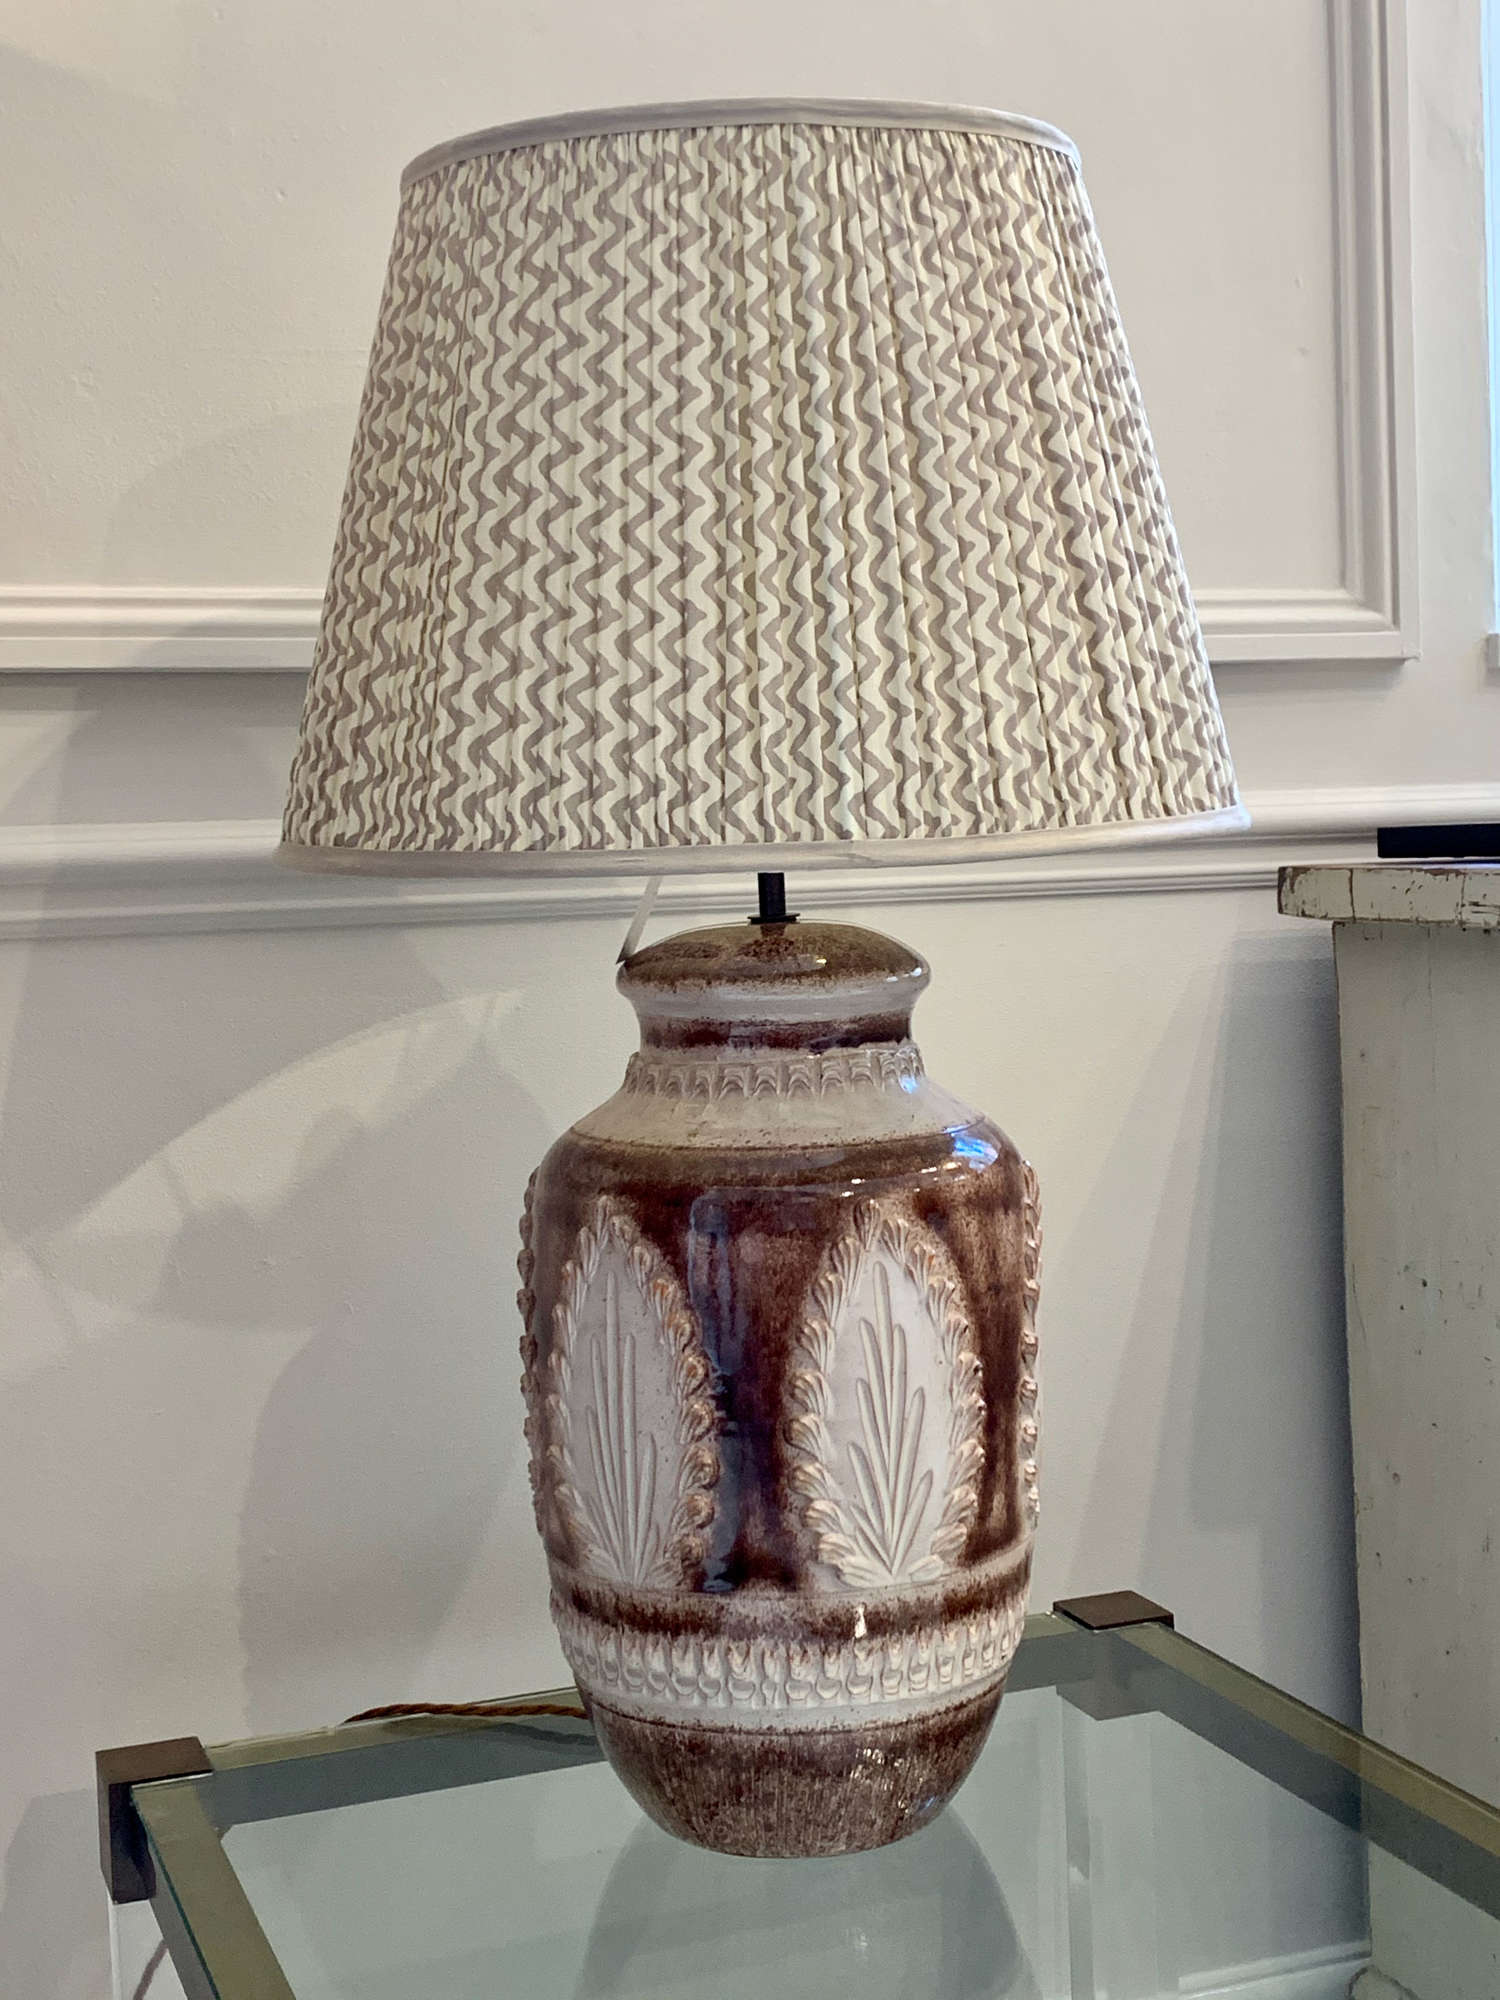 Vintage sgraffito earthenware table lamp